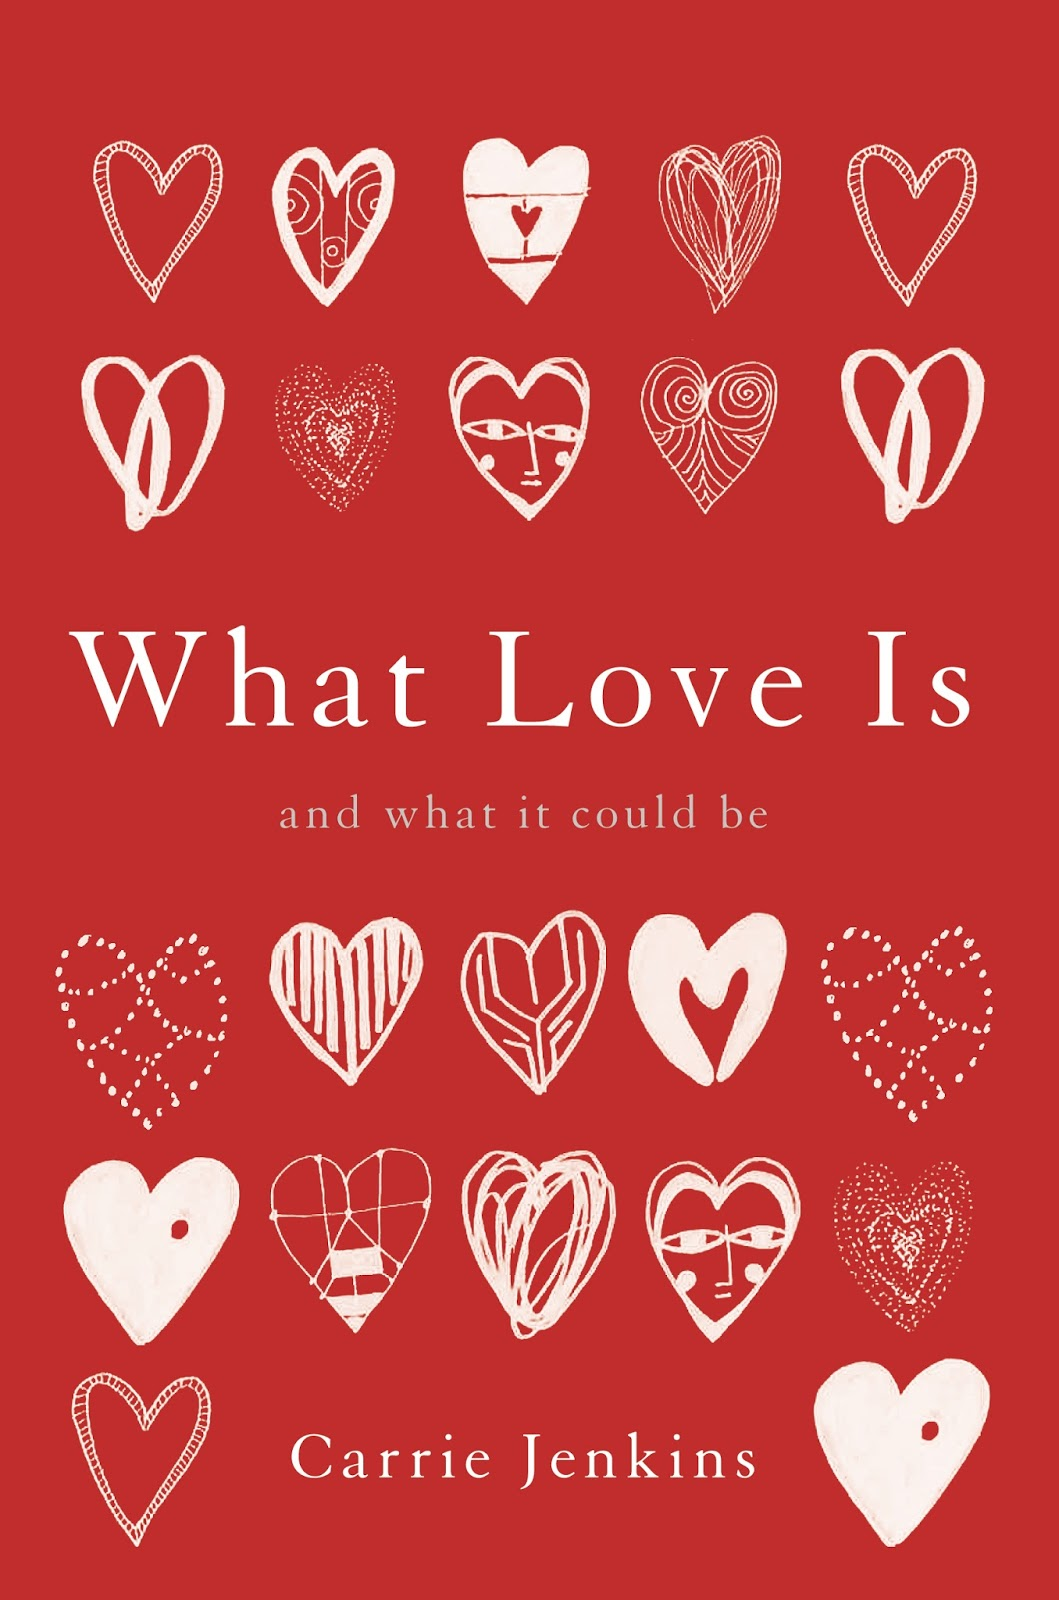 Book Cover About Love : Imperfect cognitions what love is